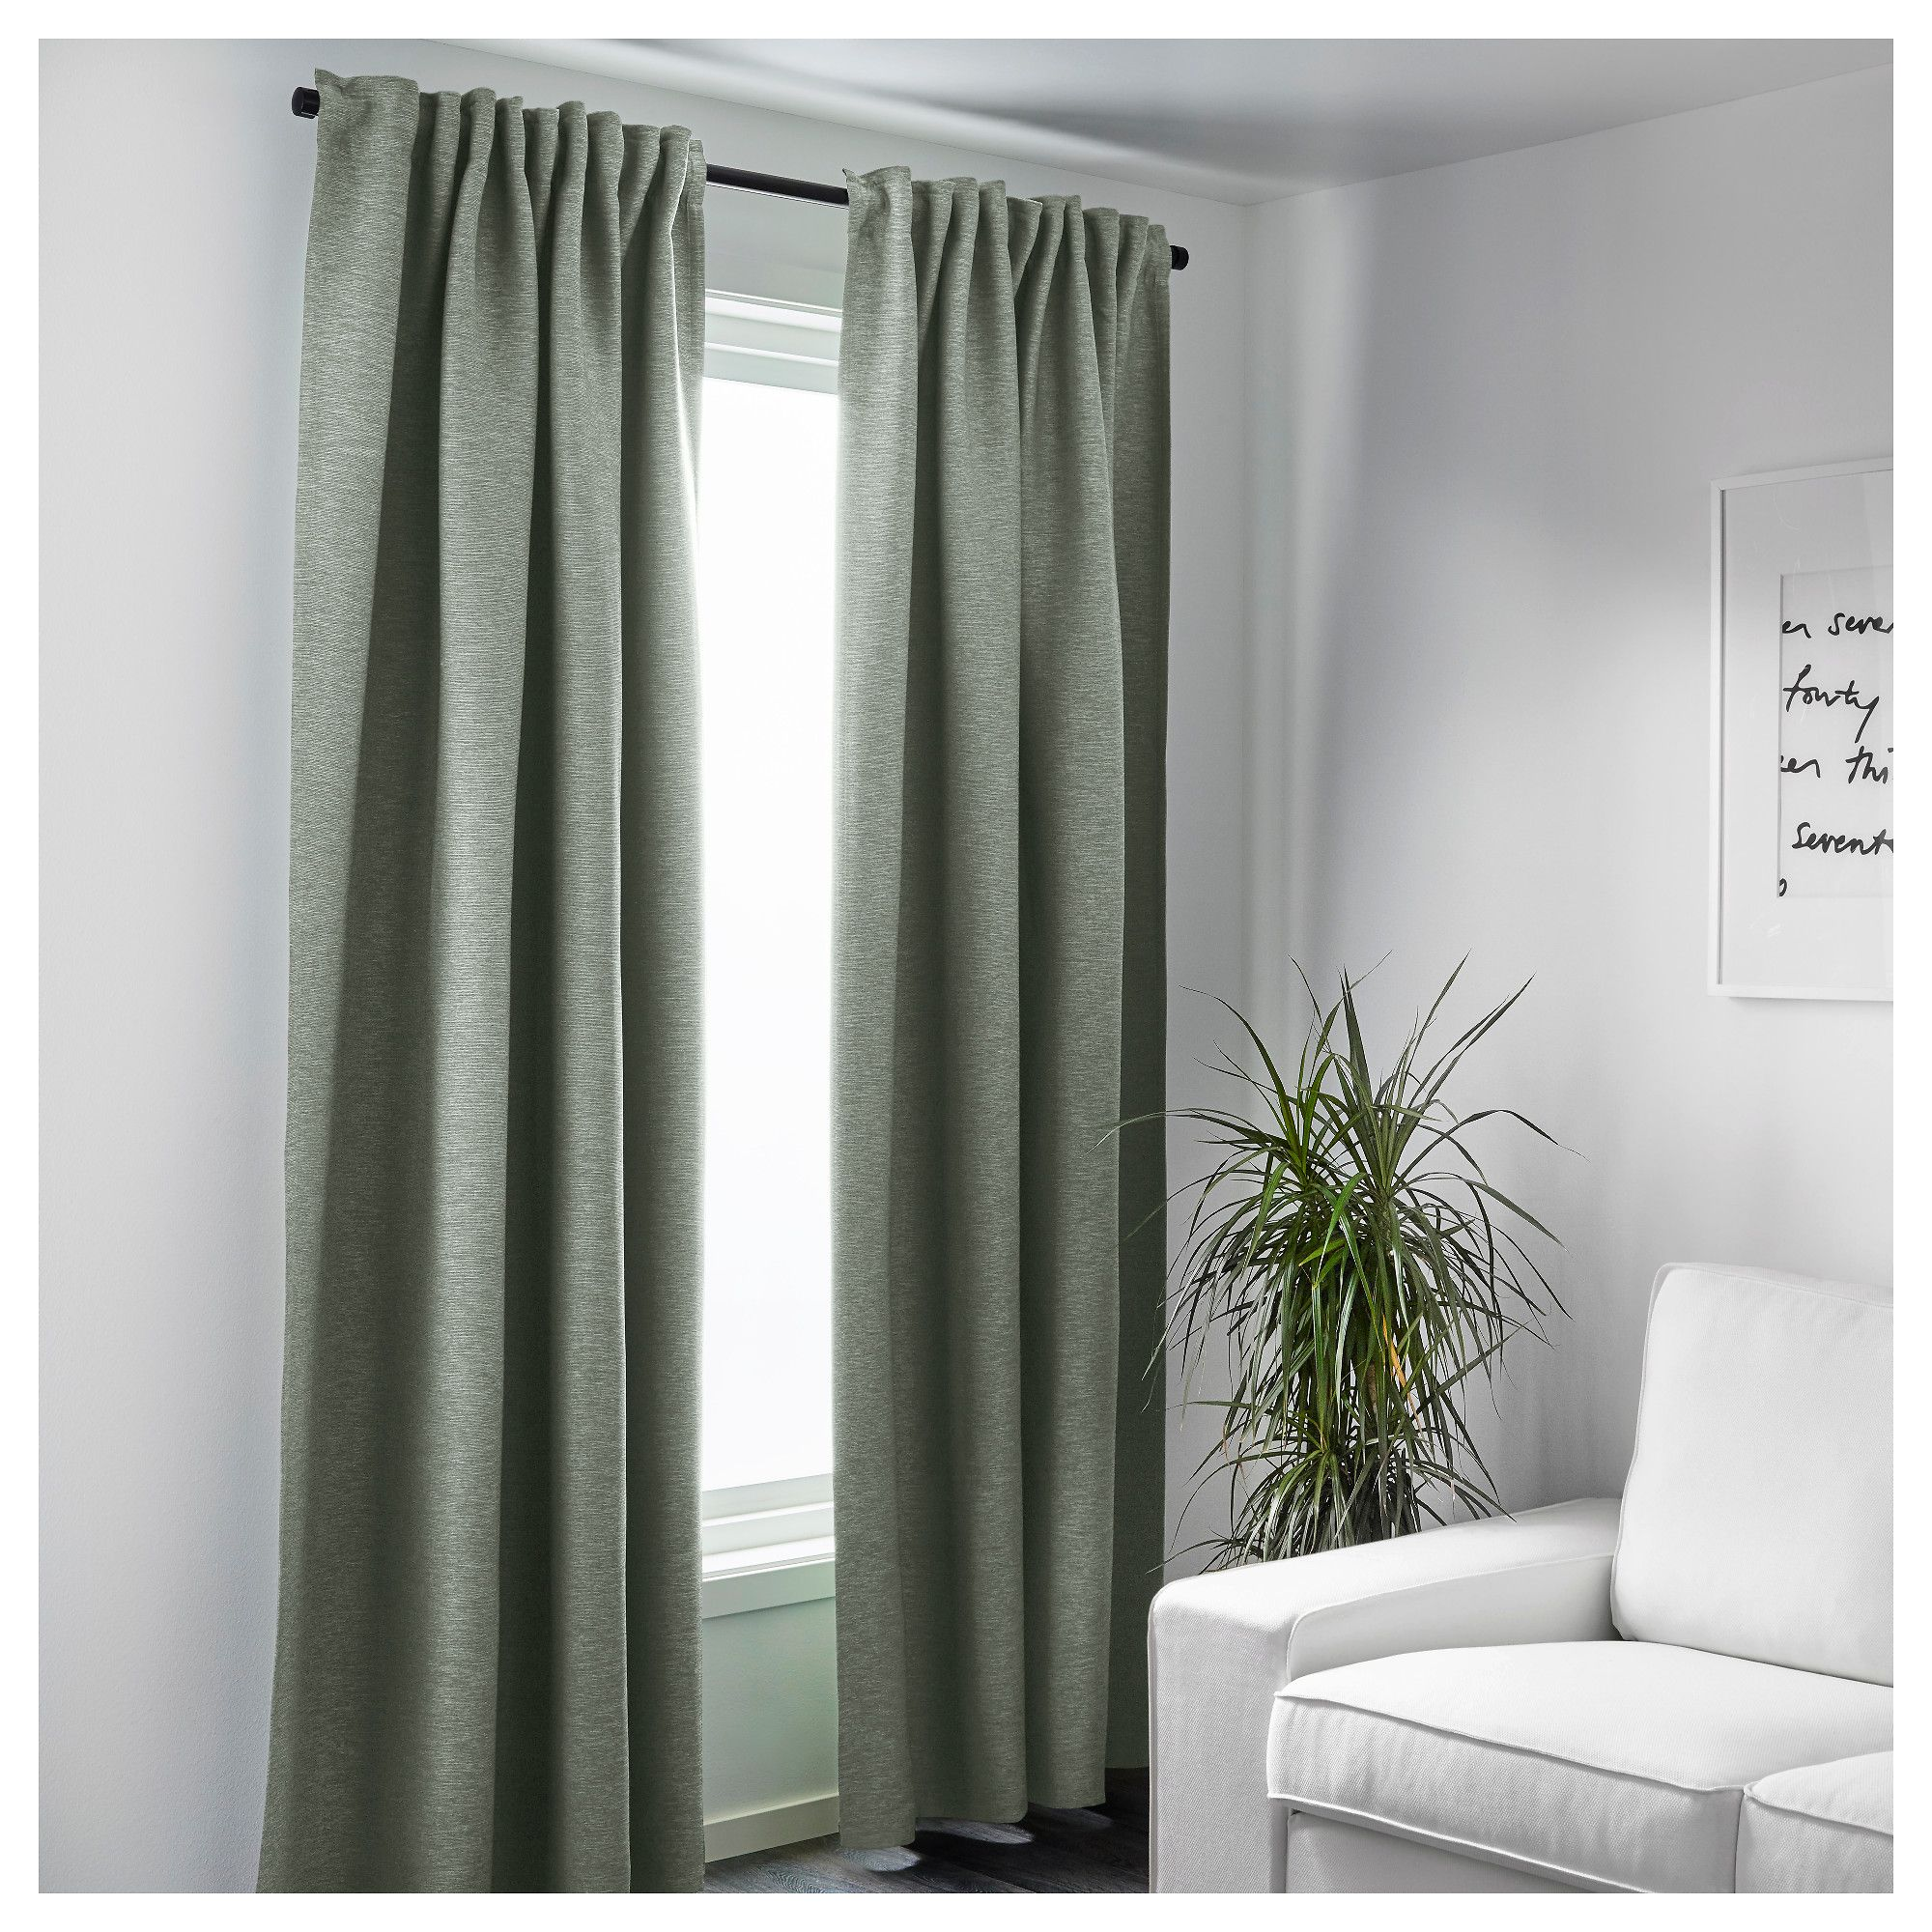 do category colored set drapes rugs sheer of xxx cotton white curtain voile tone crinkle solid and market panels curtains world